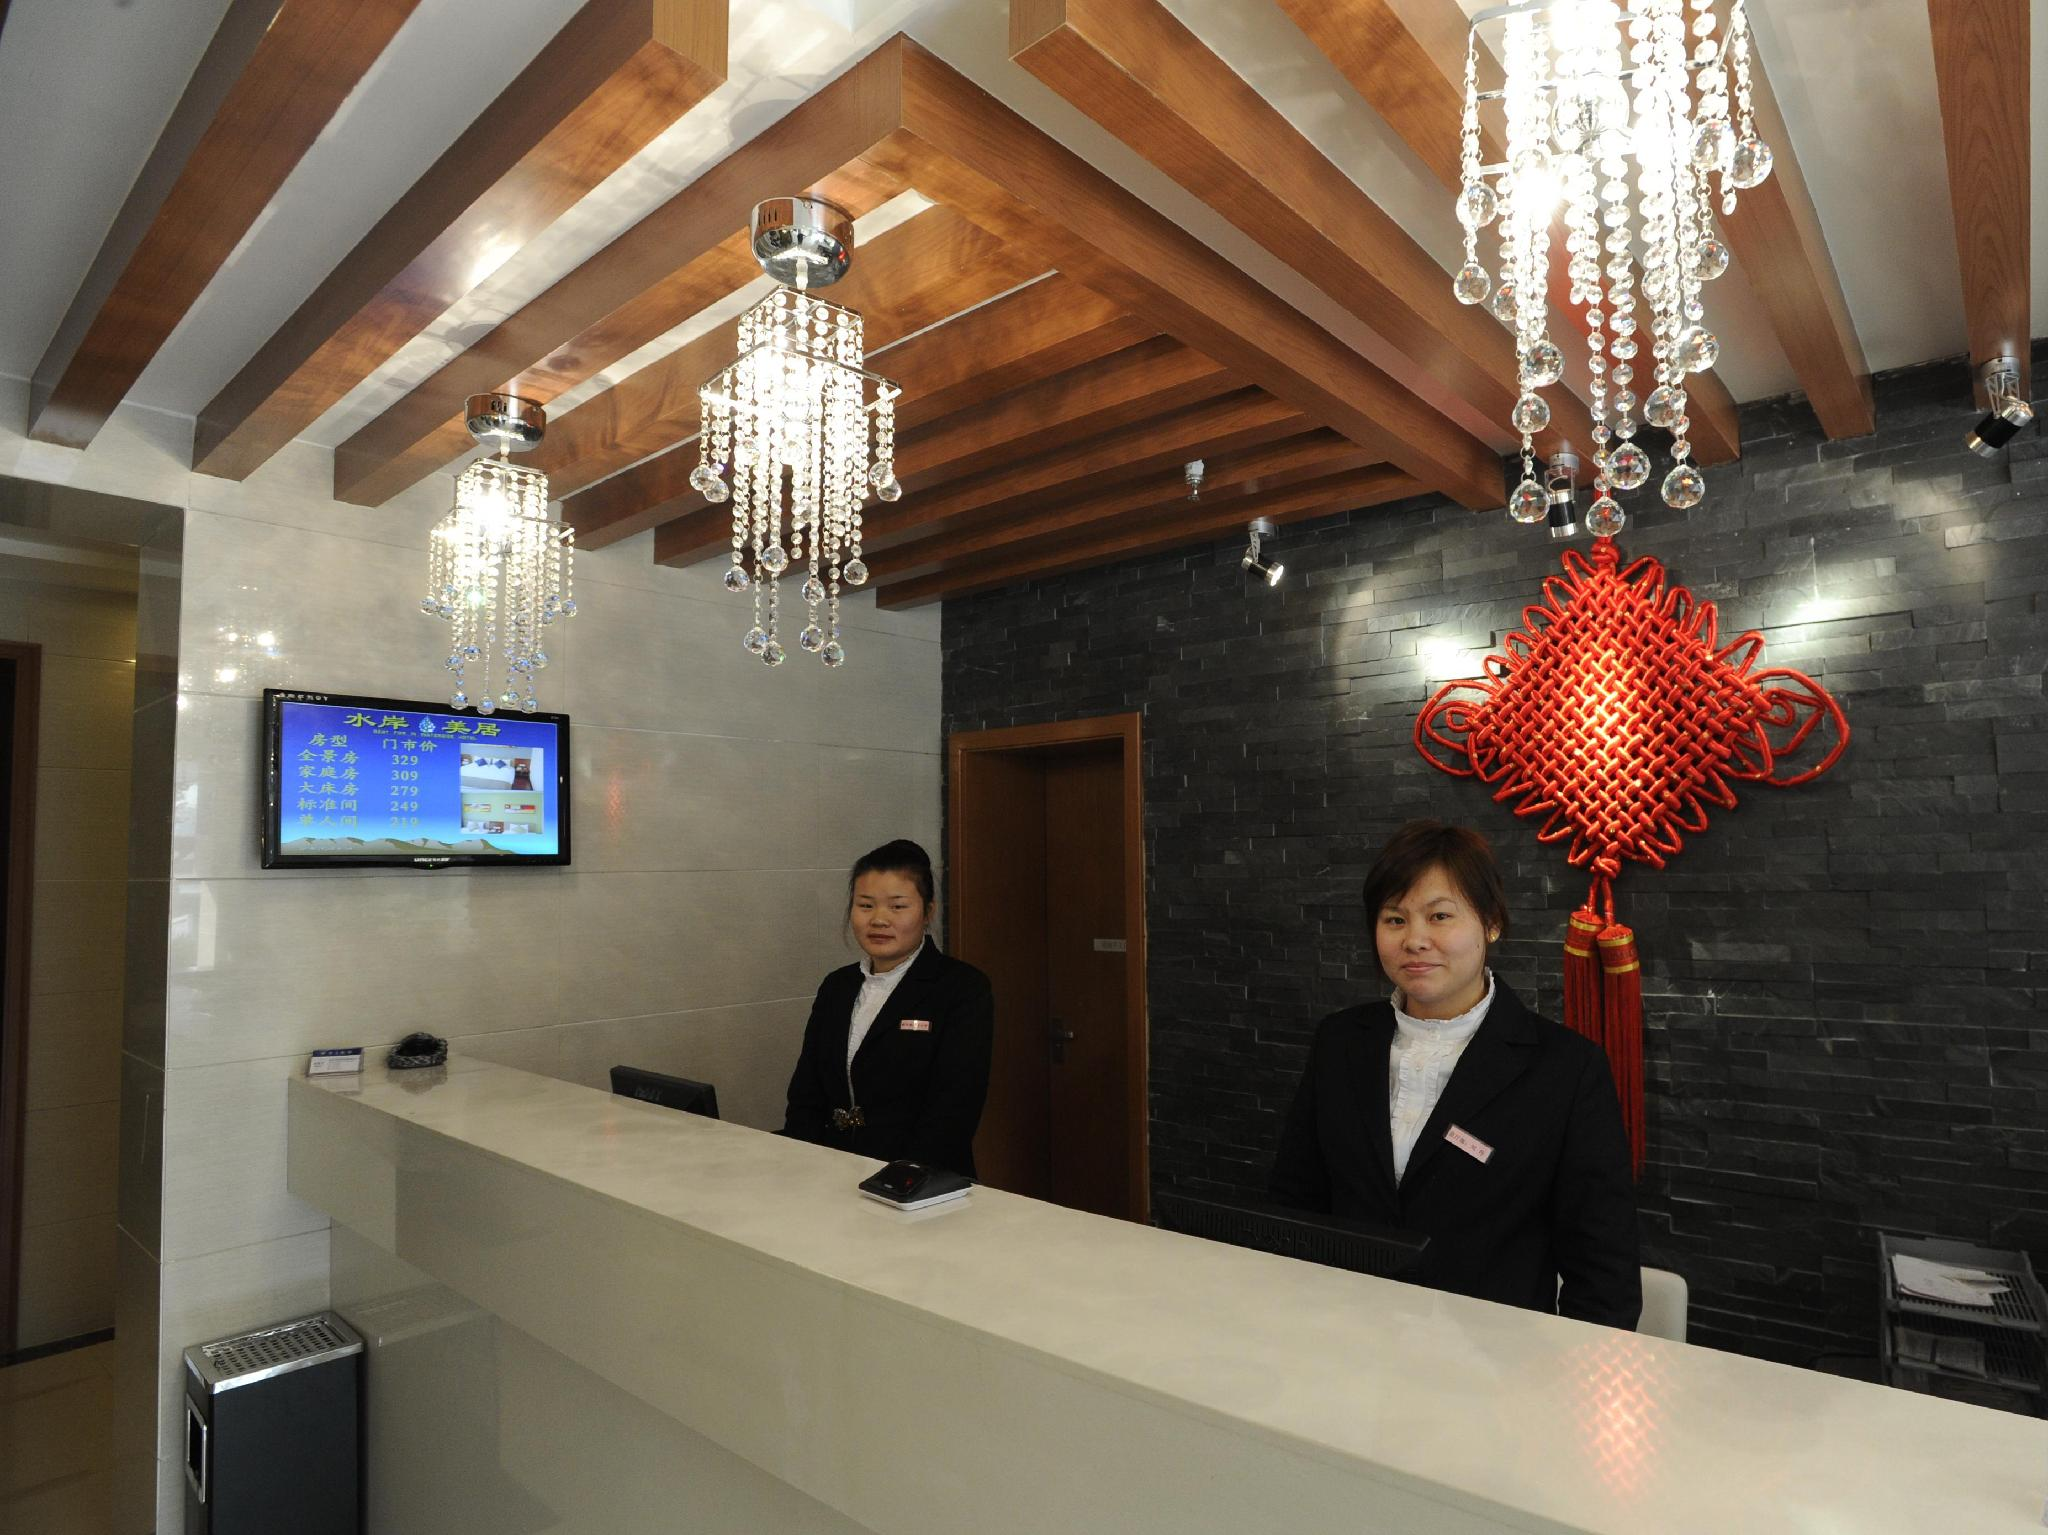 7 Days Inn Wuhan Wusheng Road Taihe Square Branch Hotels In Wuhan China Book Hotels And Cheap Accommodation Wuhan